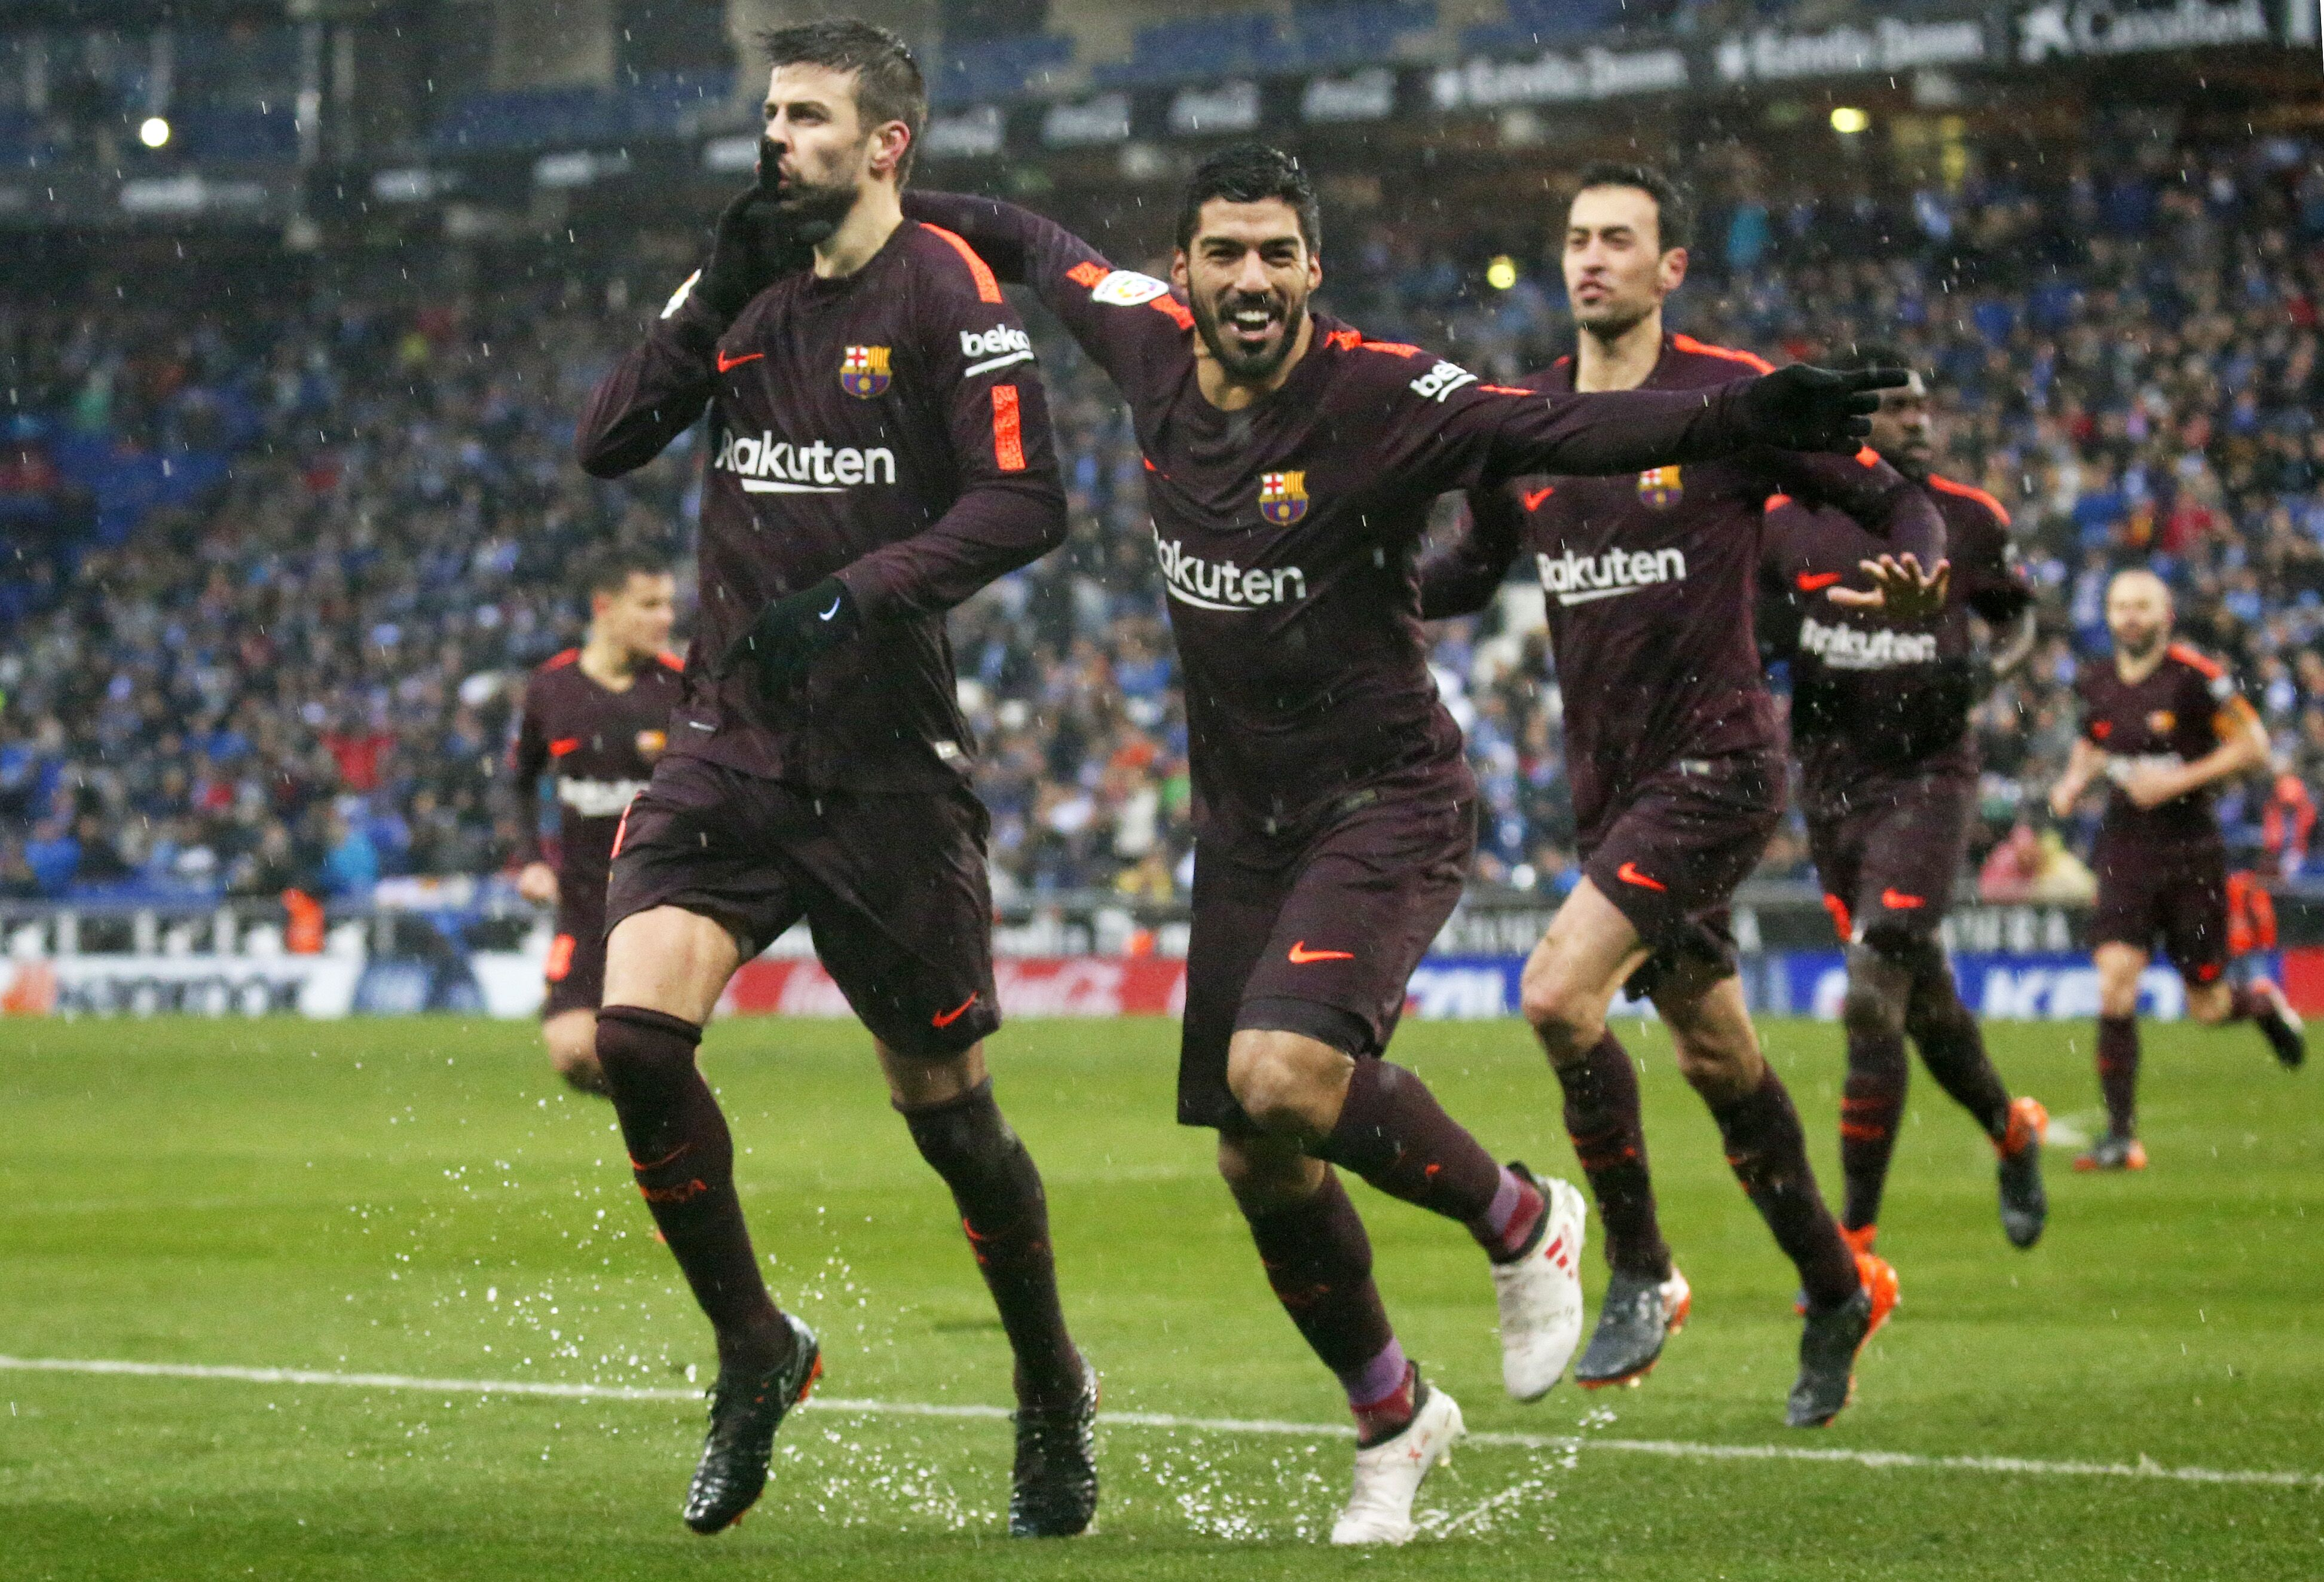 Live Stream Real Madrid Vs Getafe: Barcelona Vs. Getafe Live Stream: Watch La Liga Online